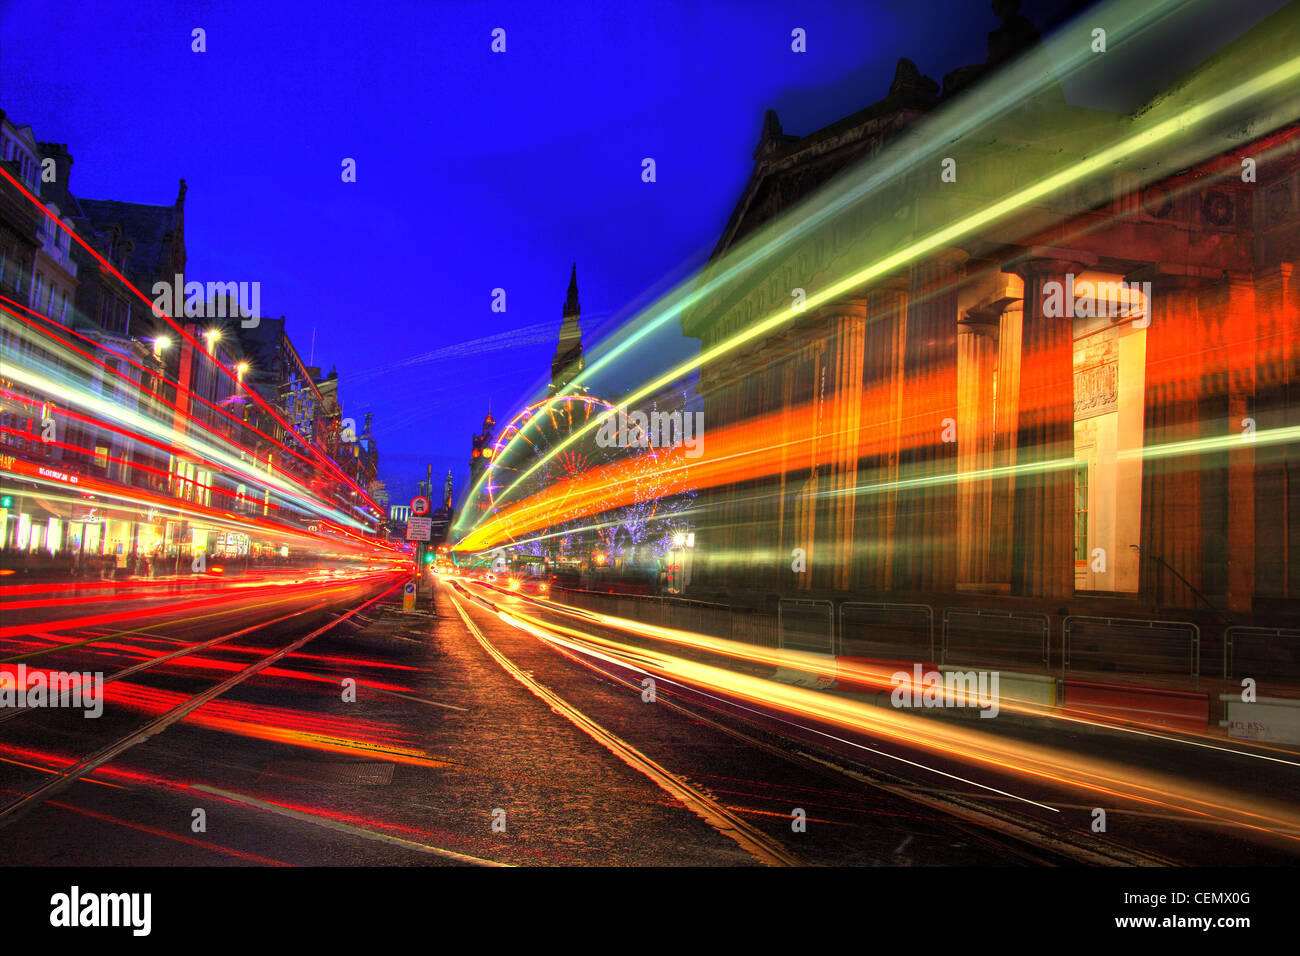 Edinburgh,Princes,St,traffic,Dusk.,A,night,shot,showing,city,car,trails,tram,scotland,capital,UK,red,stream,tony,smith,gotonysmith,car,trails,tram,line,lines,national,gallery,night,long,exposure,nightshot,rushing,traffic,middle,of,road,busy,lightstream,light,stream,speeding,cars,trams,speed,fast,red,scottish,scots,escotia,ecosse,rue,waverley,national,gallery,scottish,independance,independence,home,rule,devolution,parliament,SNP,national,party,@Hotpixuk,Government,trams,capital,Scotlands,scottish,Scots,2014,gotonysmith,Tour,tourist,tourism,tourist,attraction,Scotland,Capital,City,Scots,Scottish,icon,iconic,@Hotpixuk,HotpixUk,Buy Pictures of,Buy Images Of,Tourist Attraction,city Centre